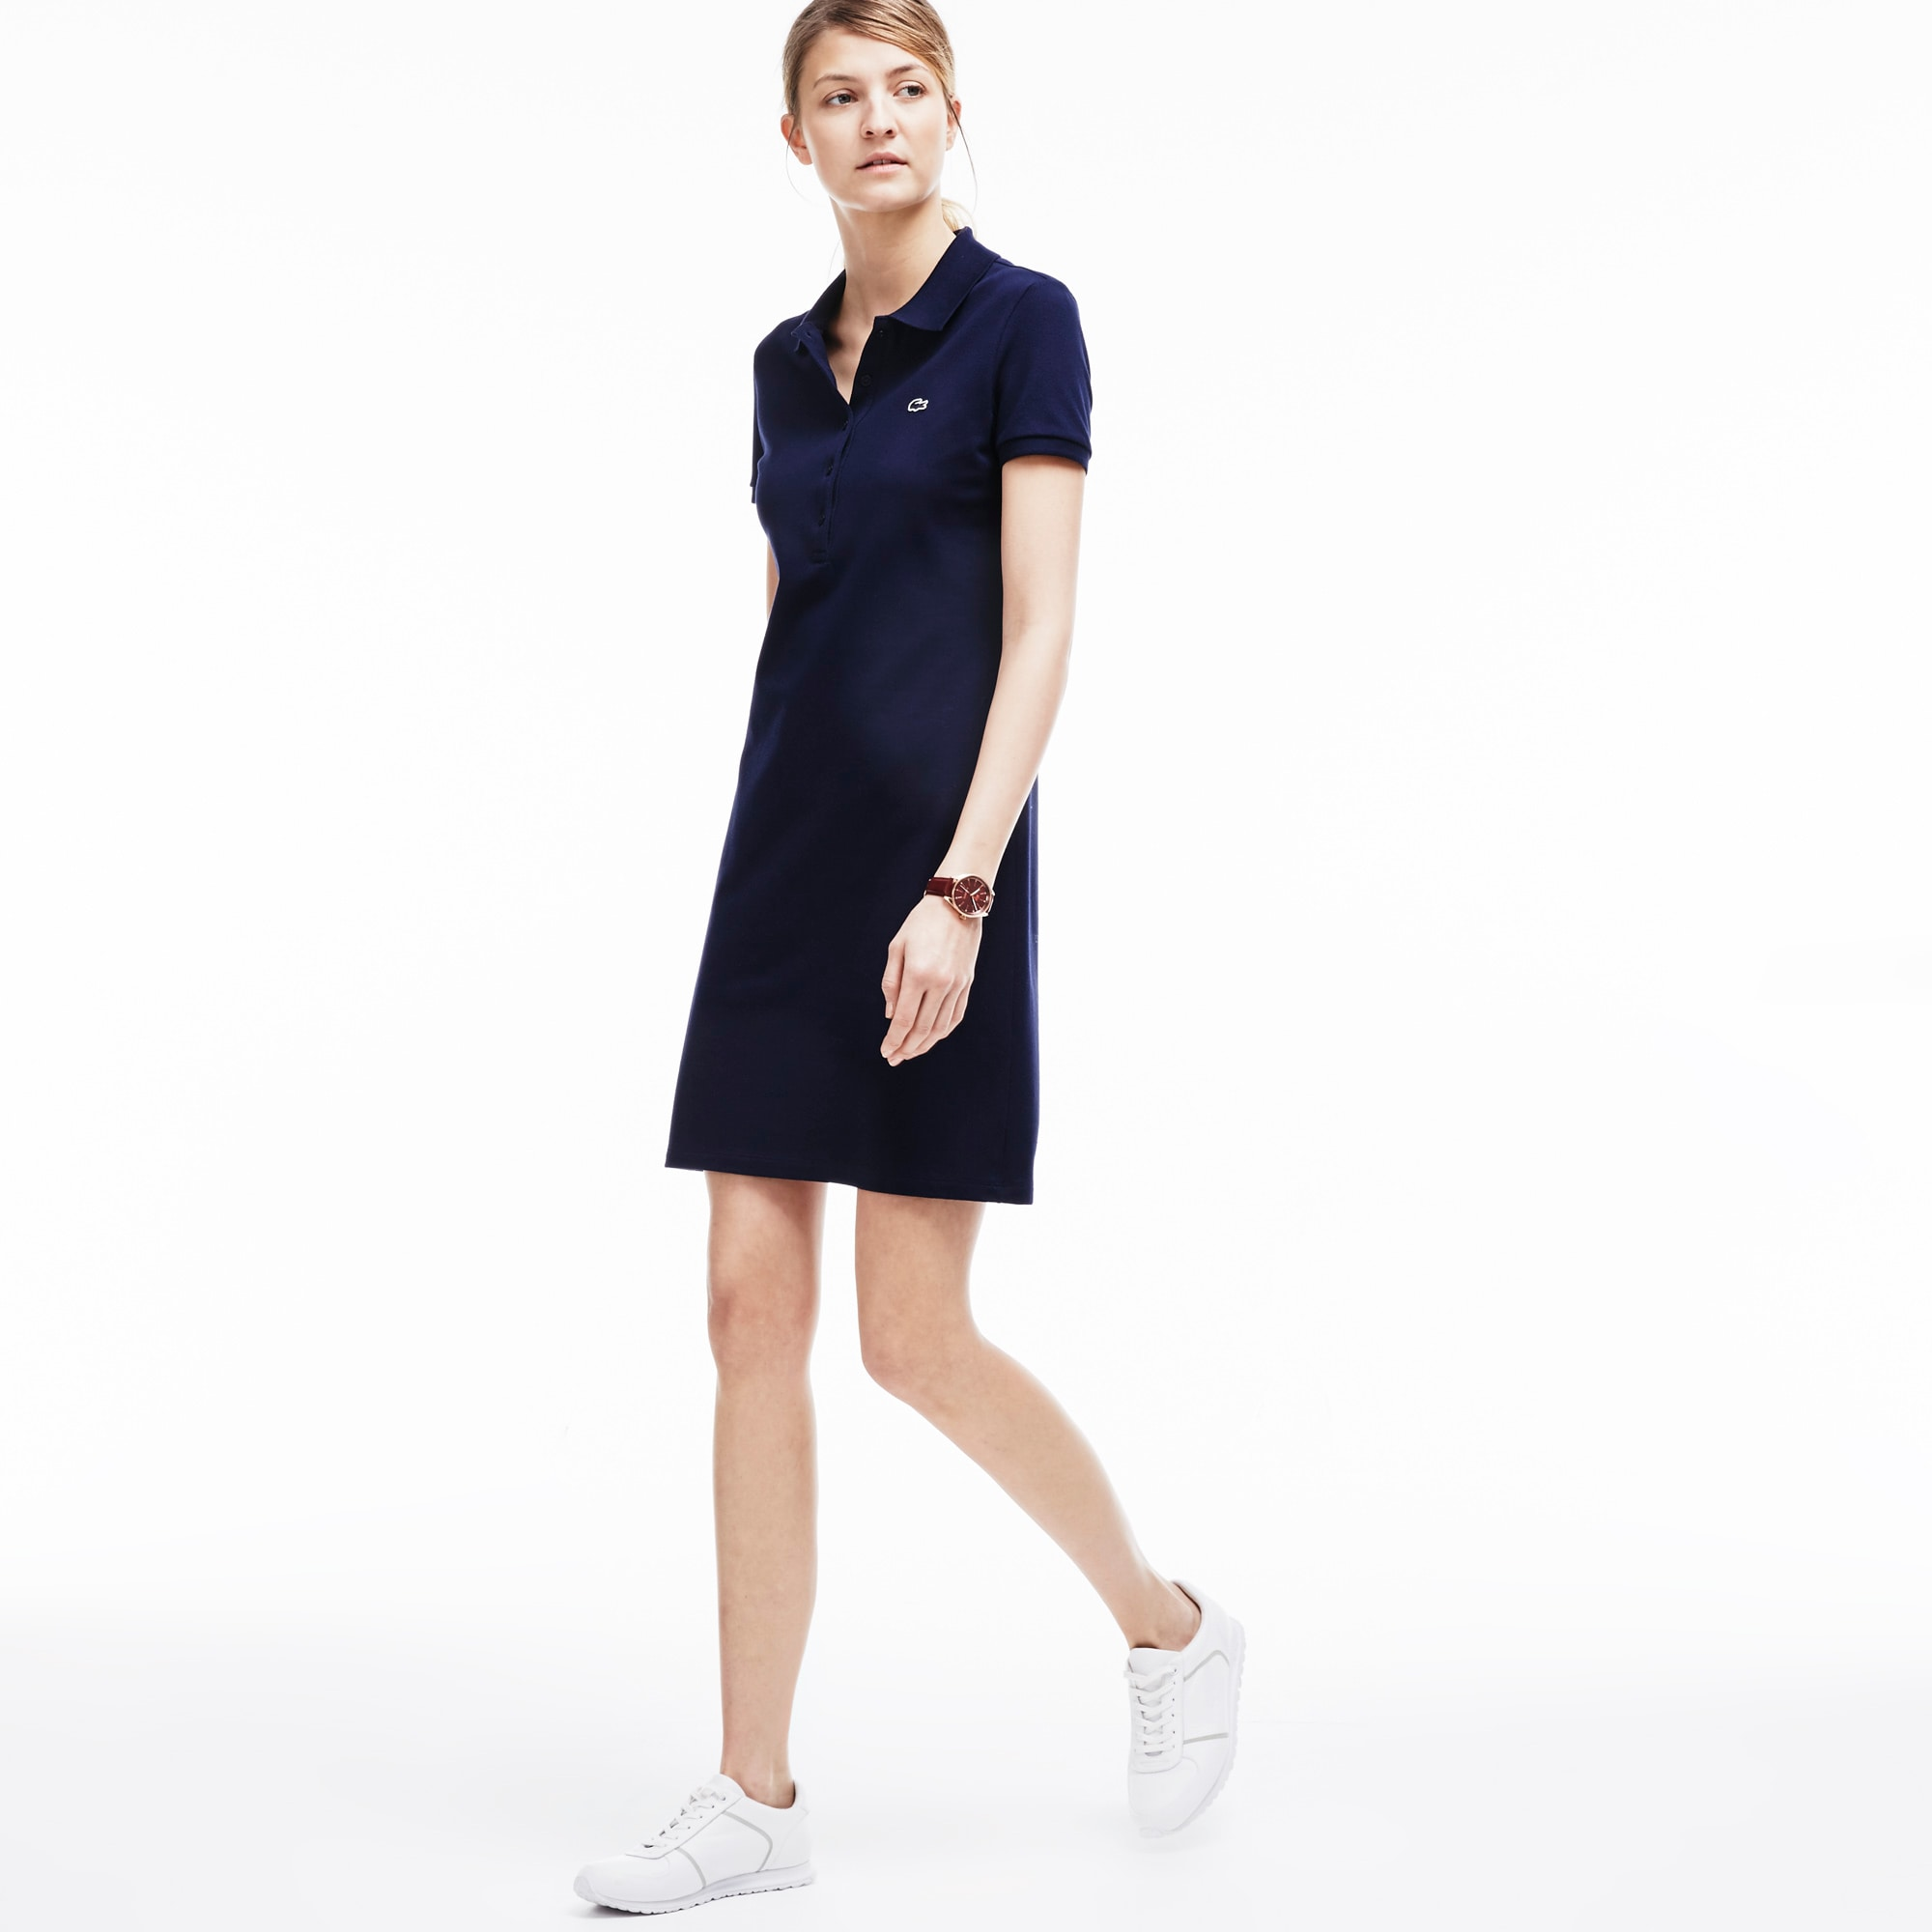 Lacoste Women's Polo dress in stretch mini piqué